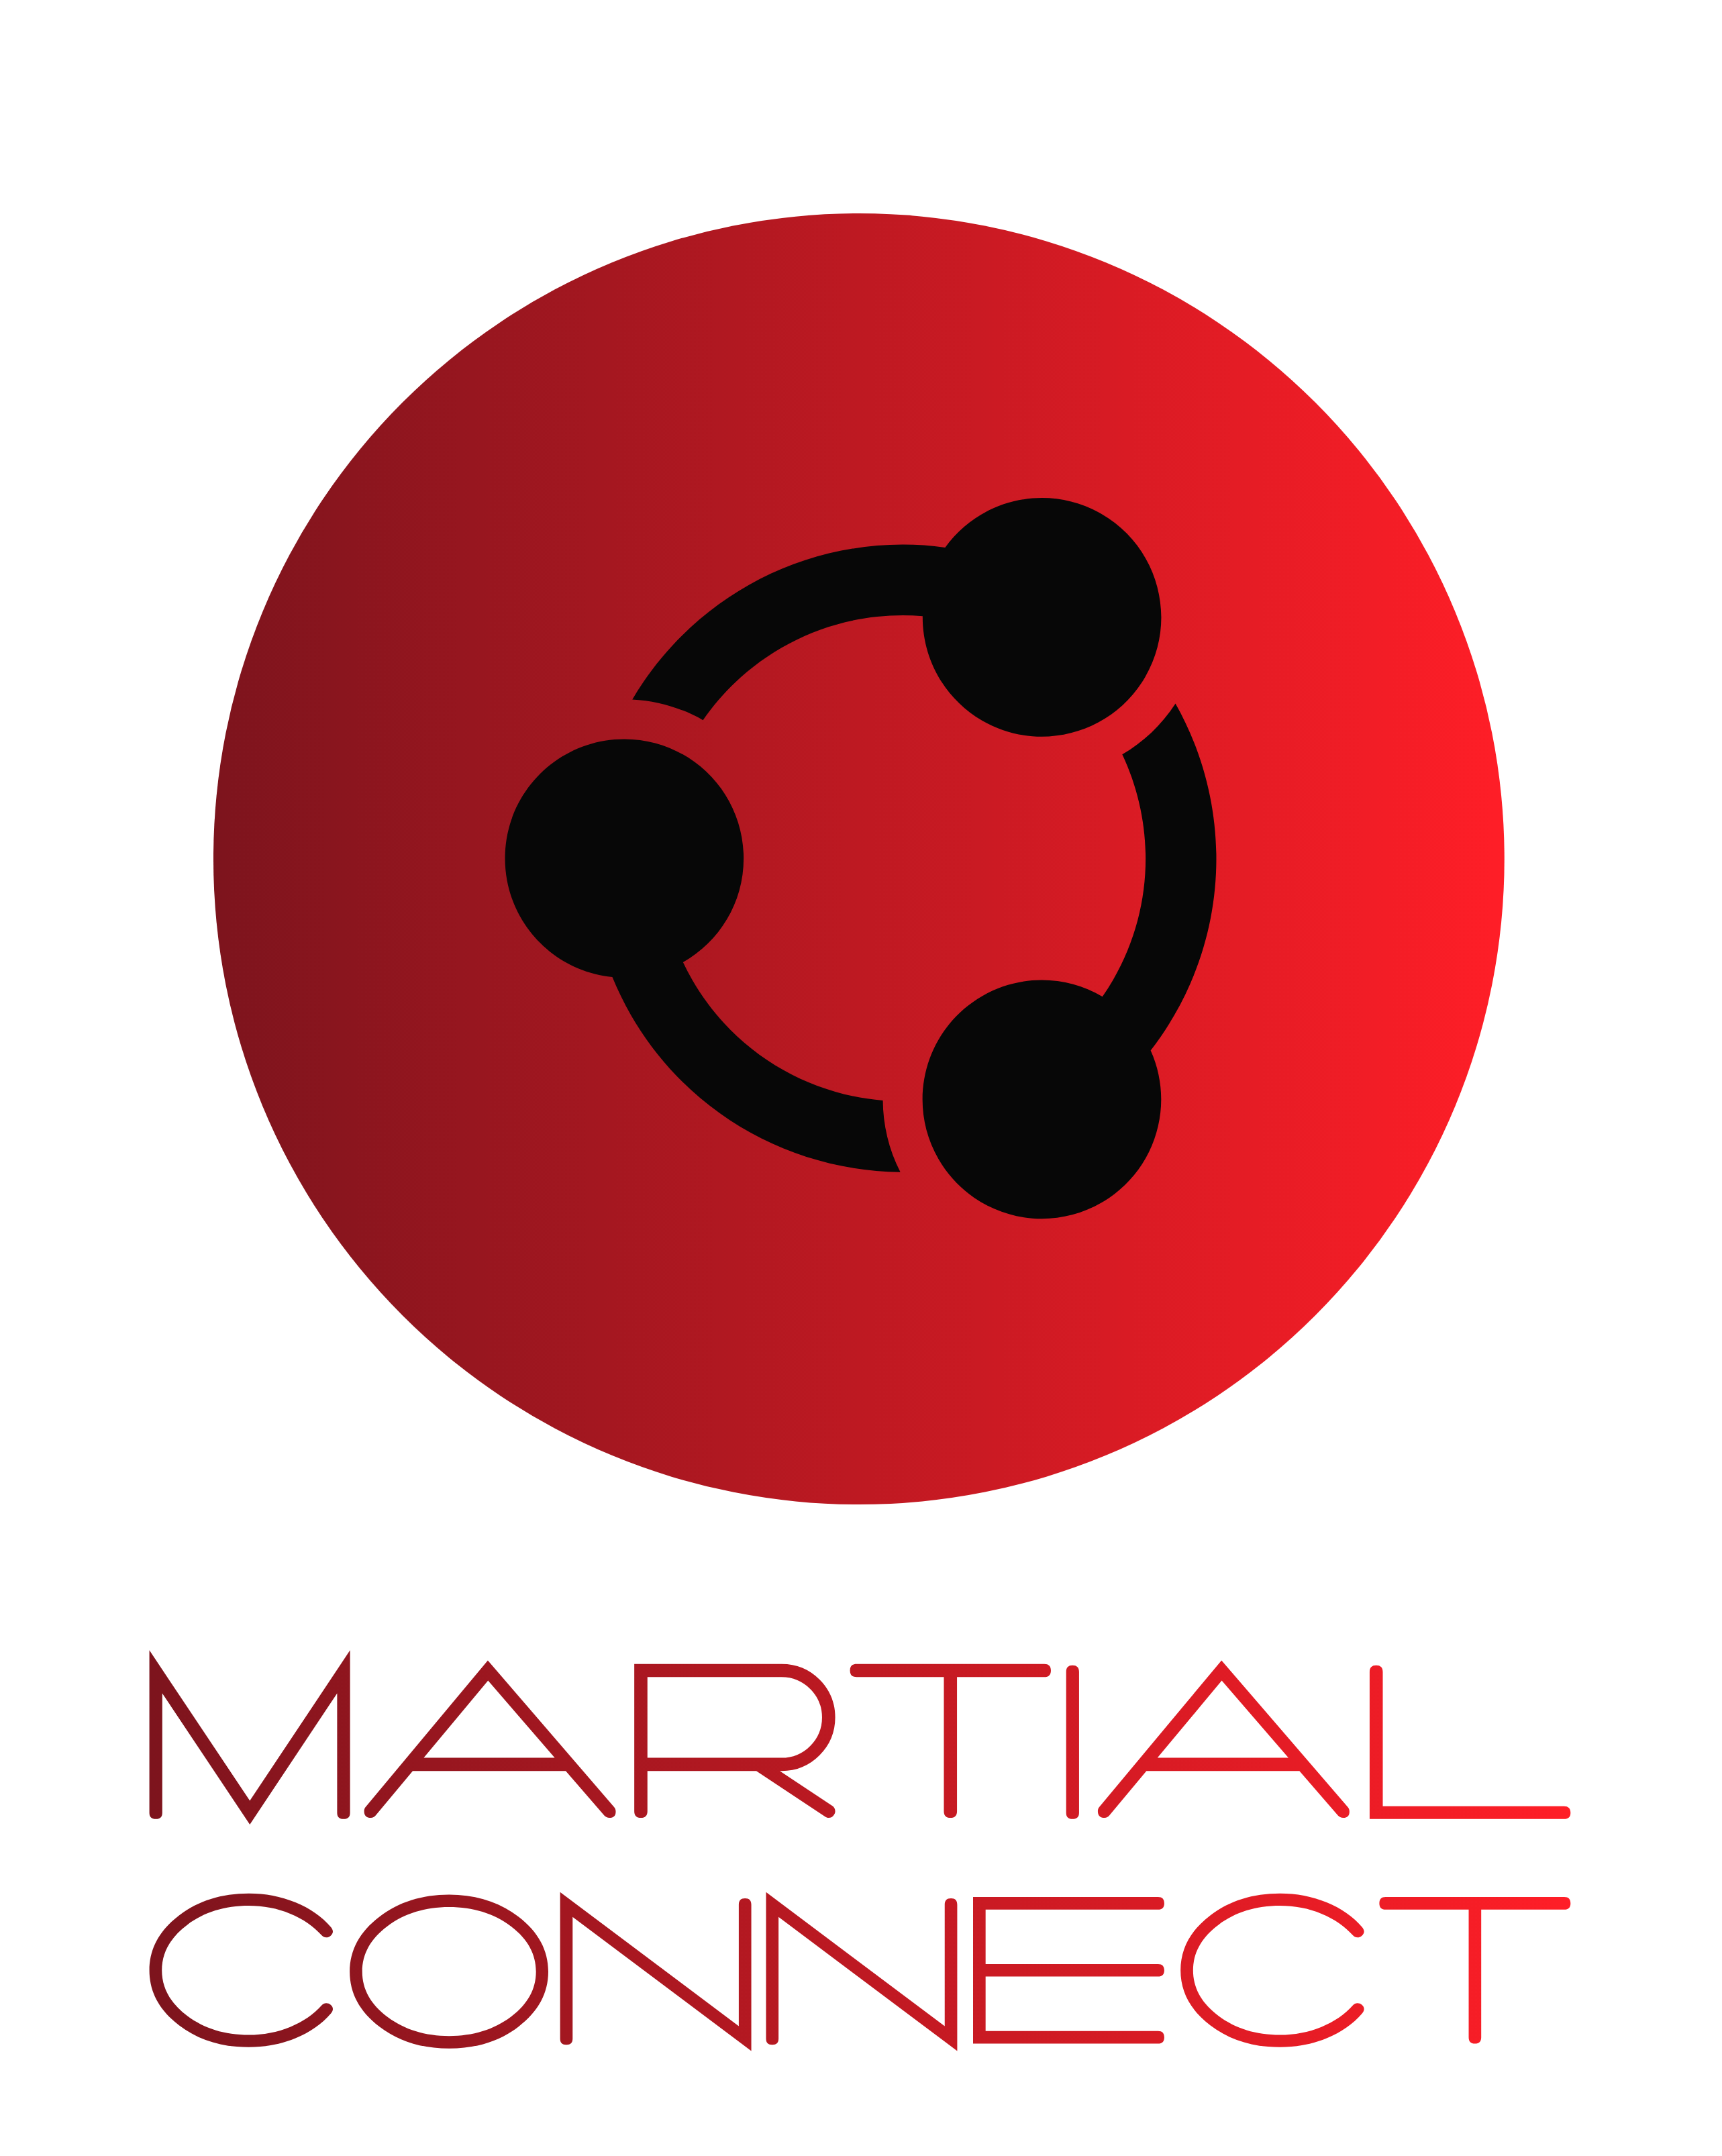 Martialconnectred